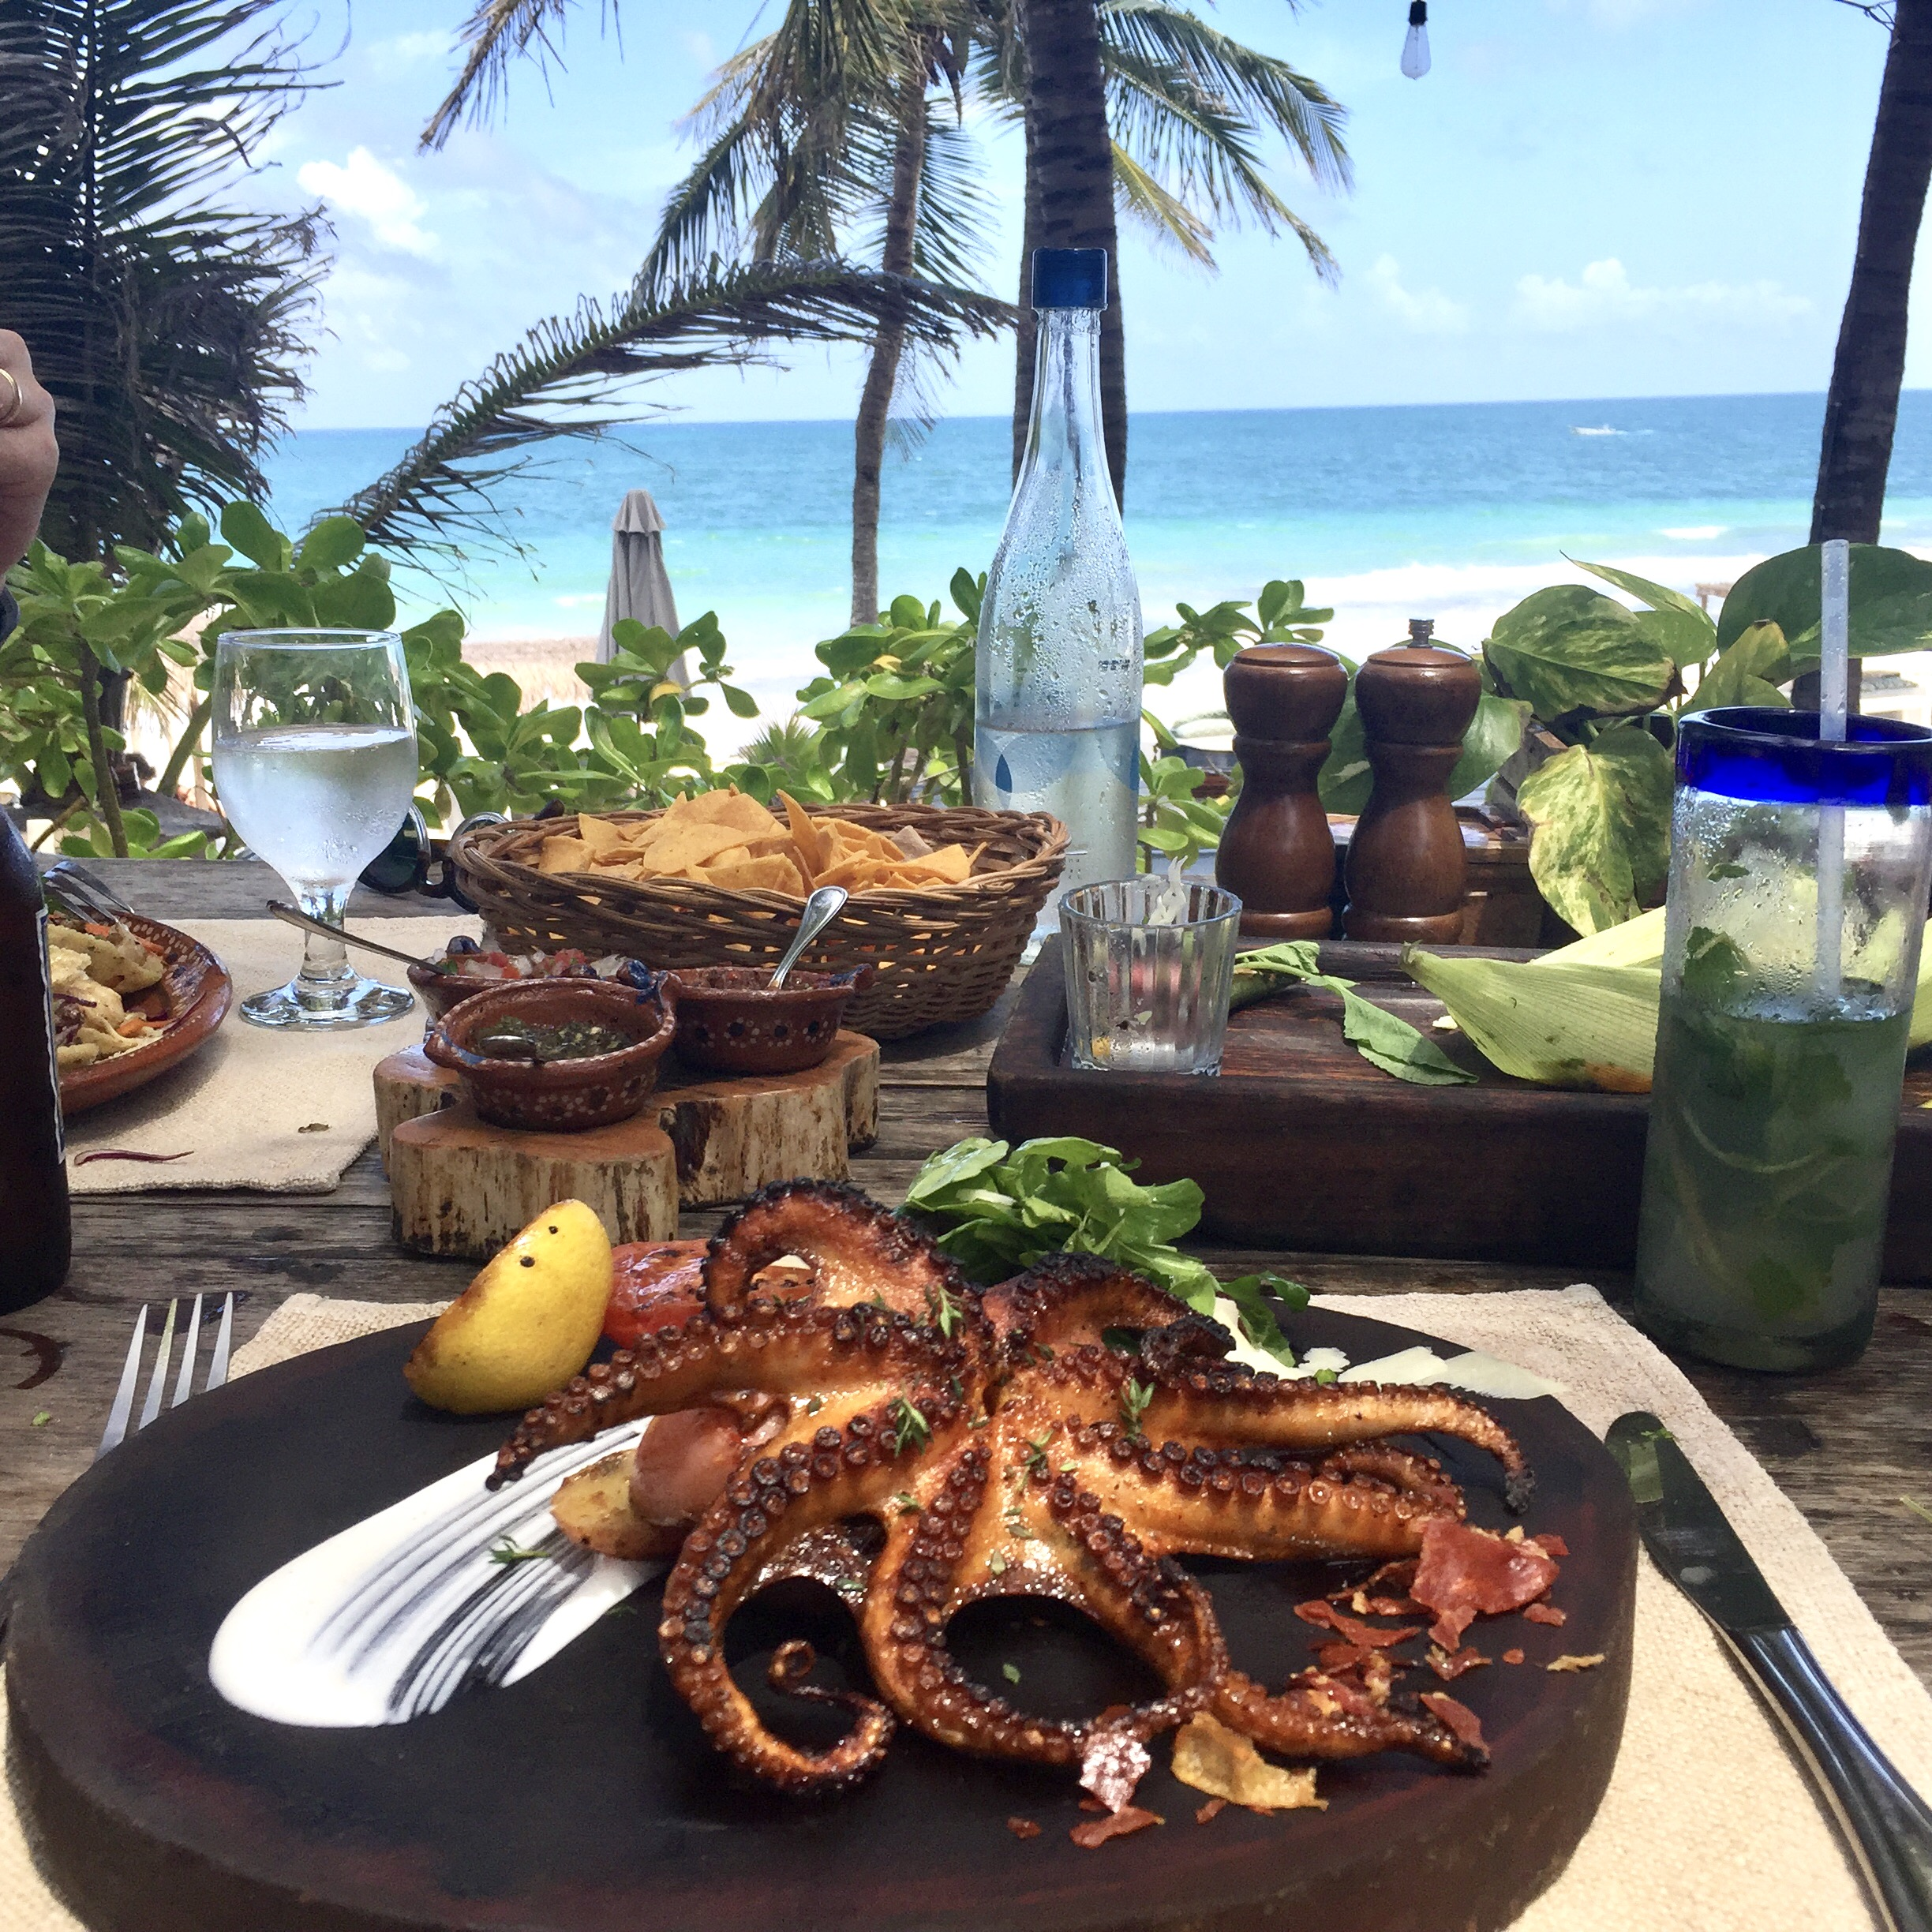 Fresh Grilled Octopus is one of Be Tulum's specialties!